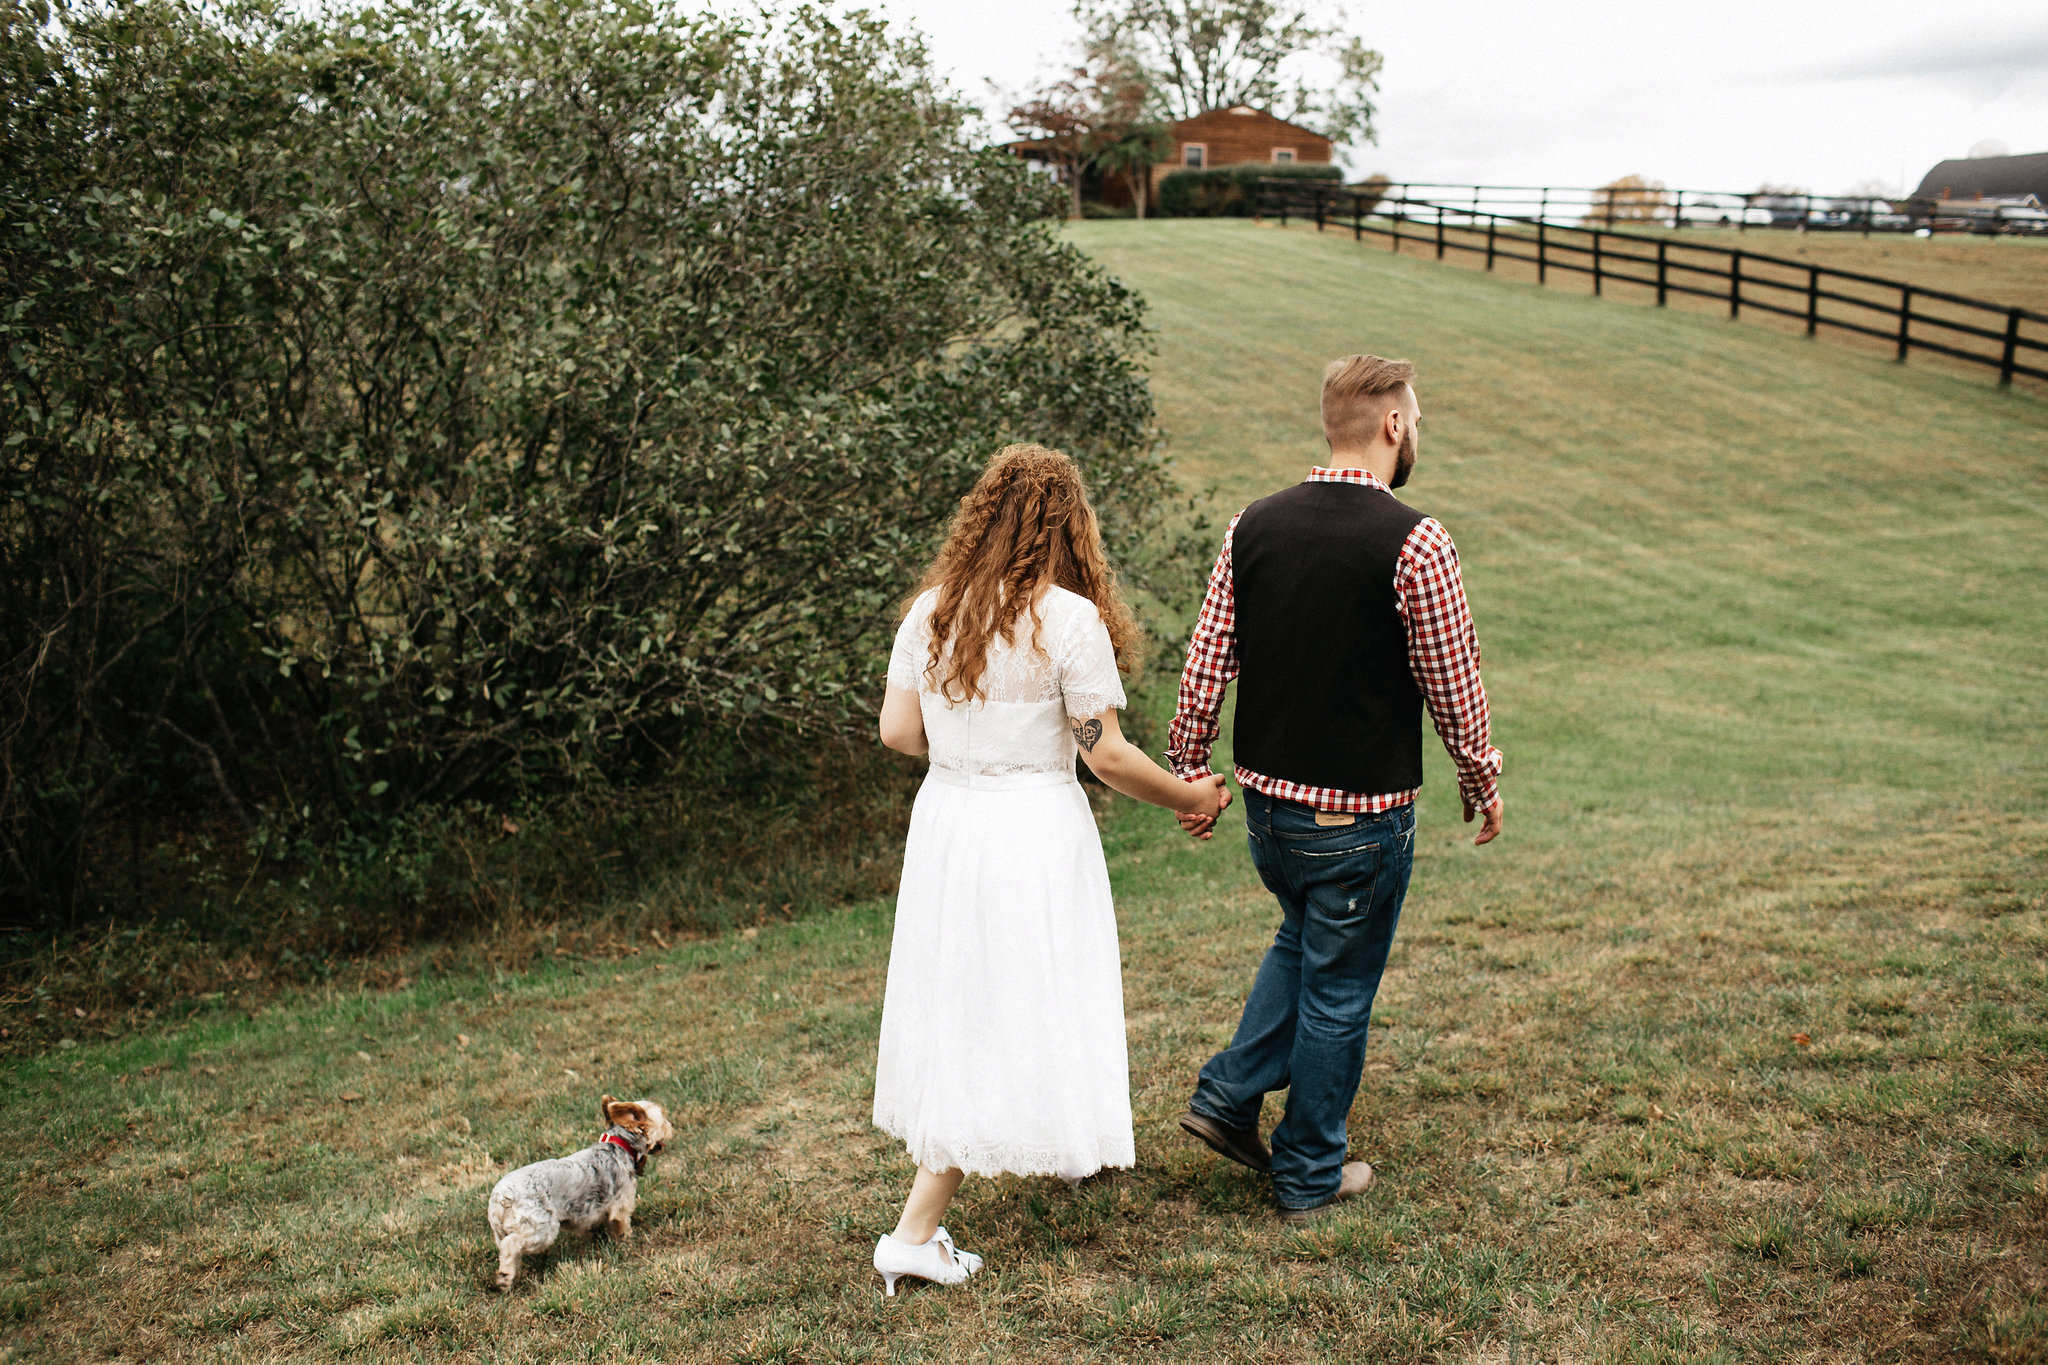 Caitlin&CodyMarried2017-11-03at19.19.39PM150.jpg